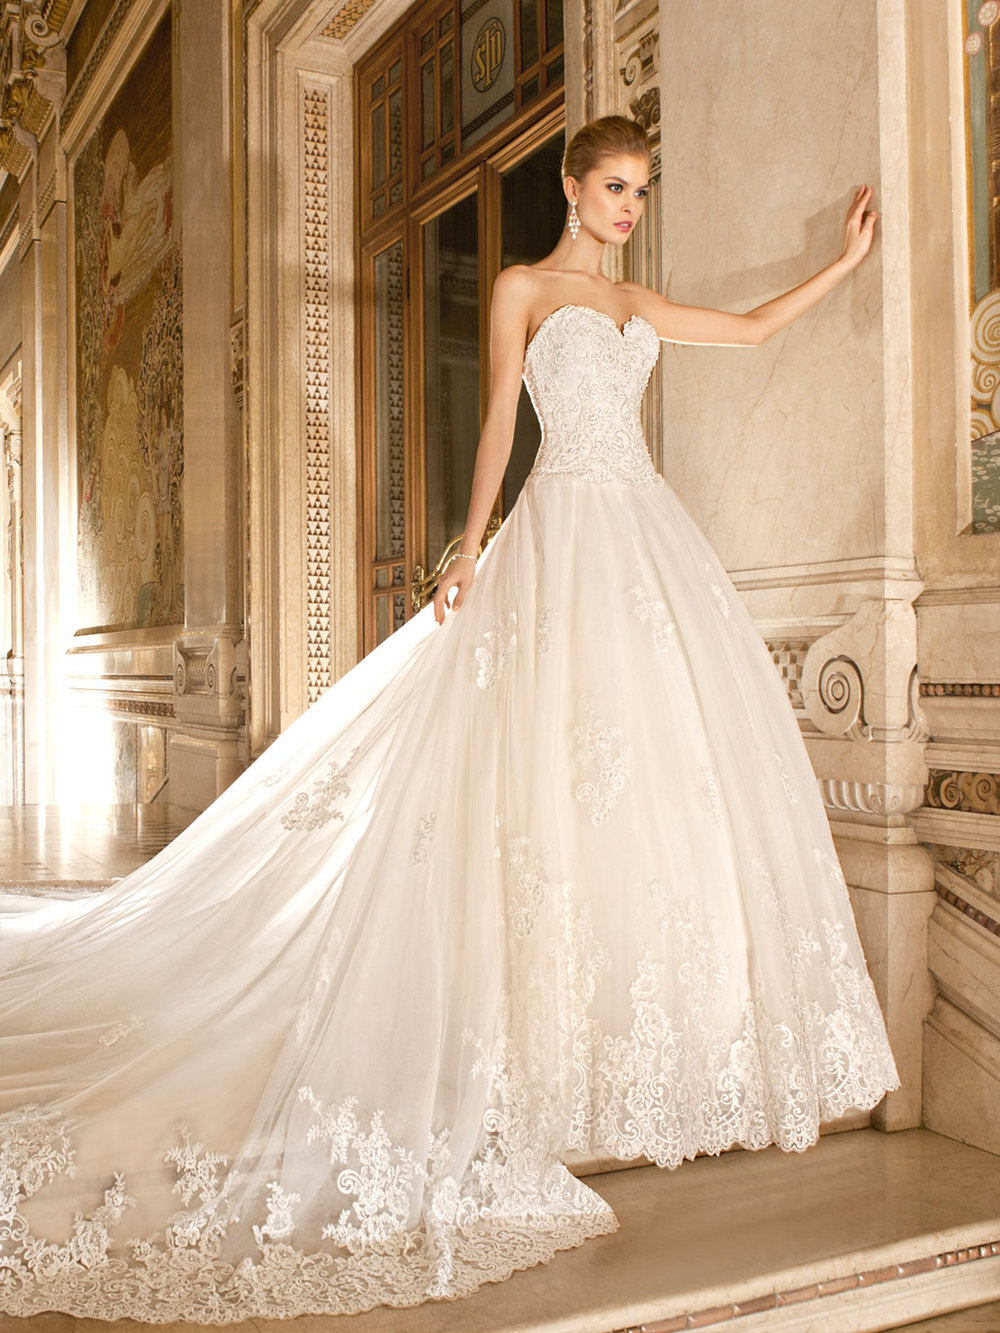 mesmerizing long train wedding dresses long train wedding dresses long train wedding dresses